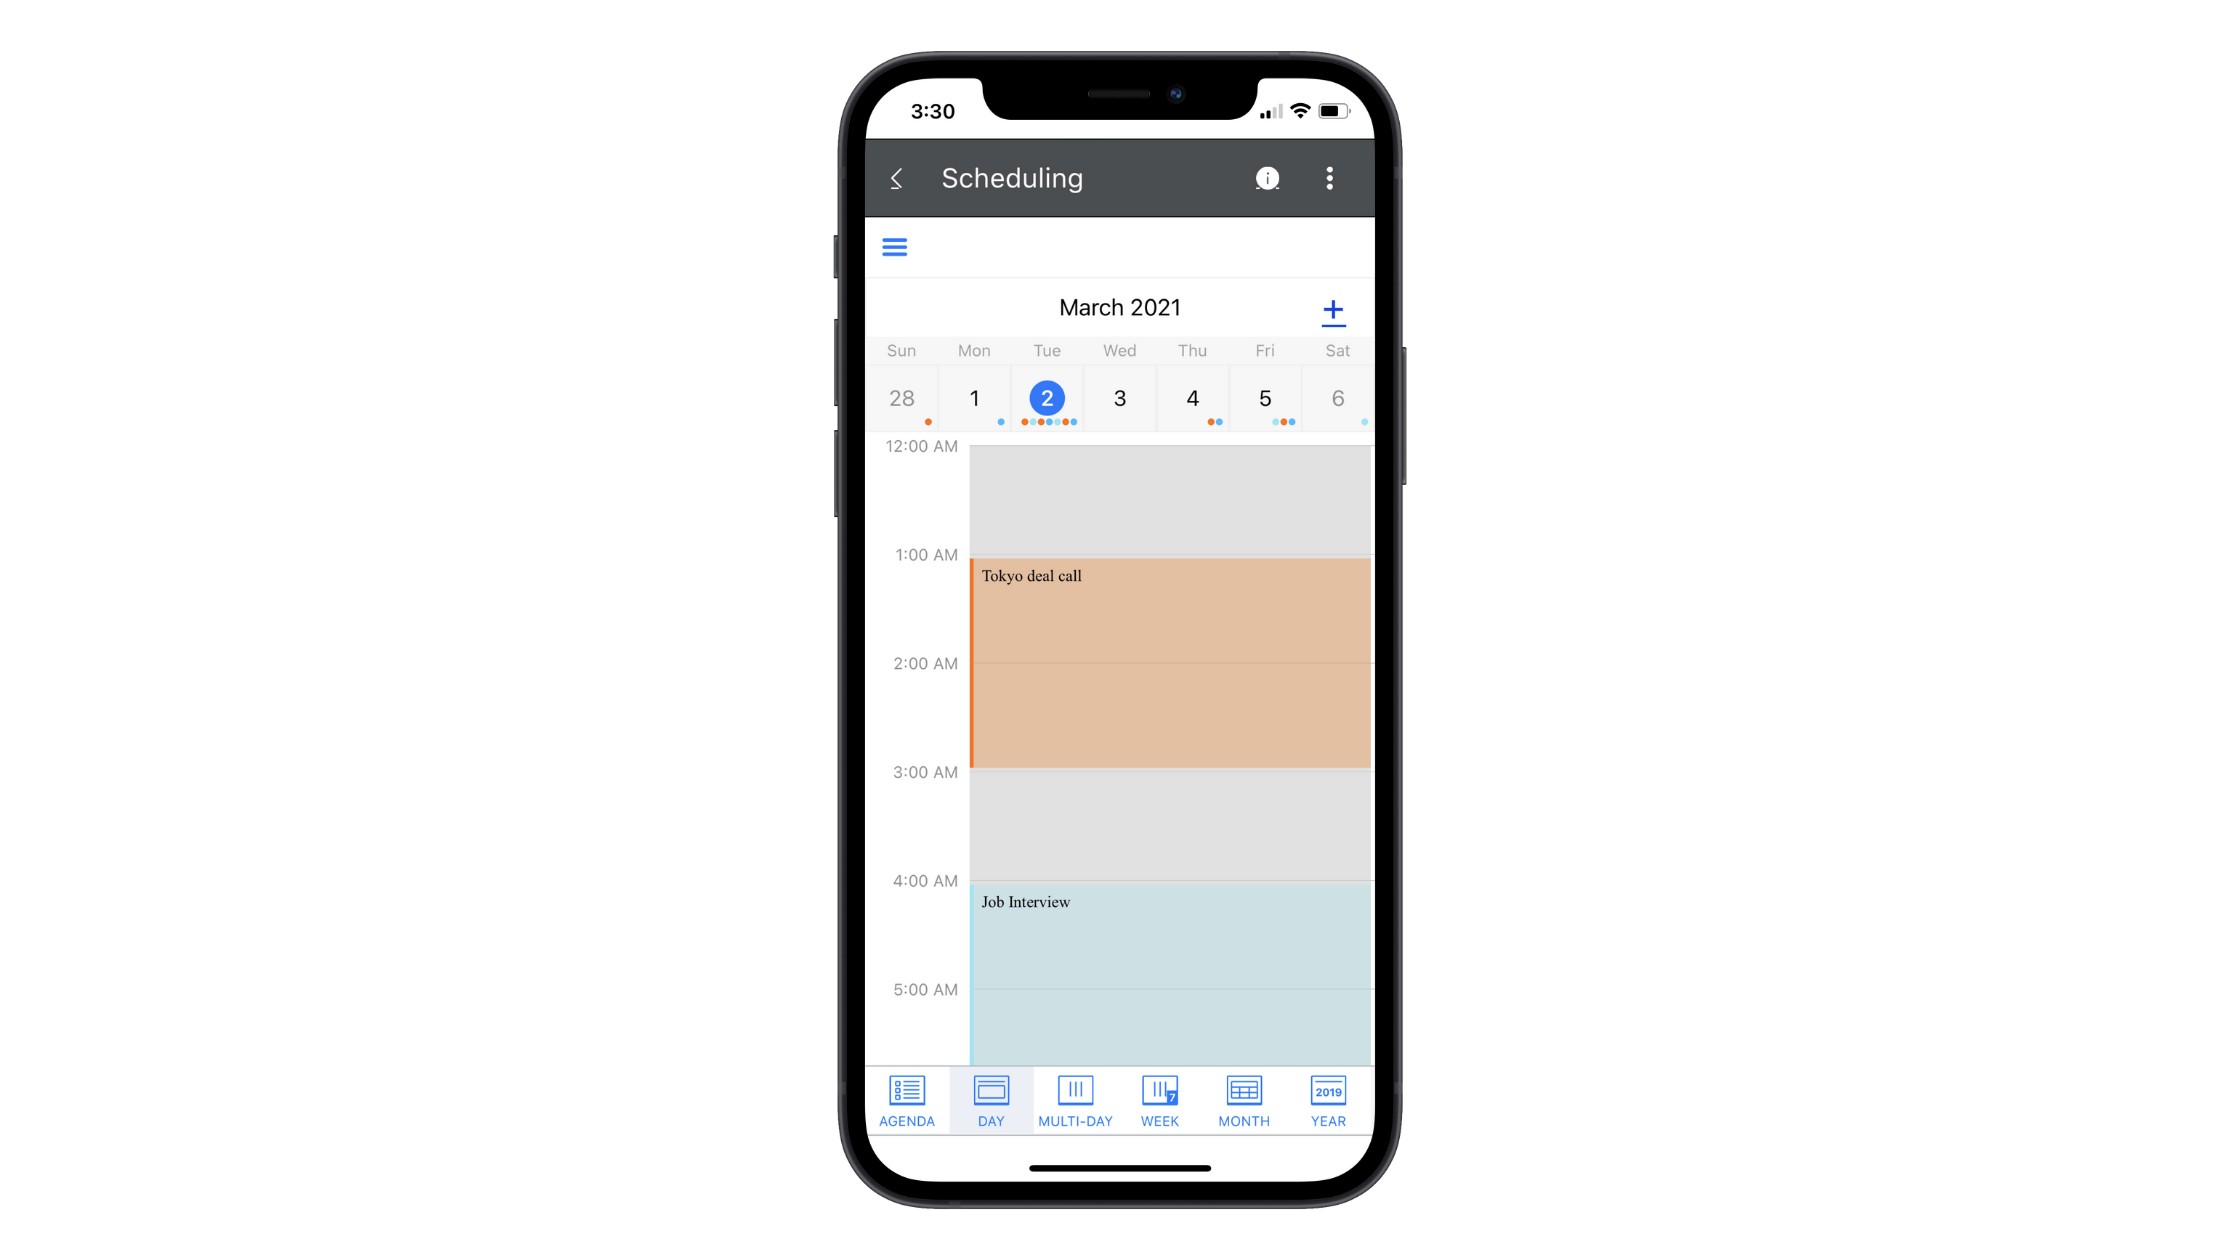 This scheduling component is part of the Telerik UI for Xamarin library. In this example, we see what a schedule for March 2021 looks like in the Day view.